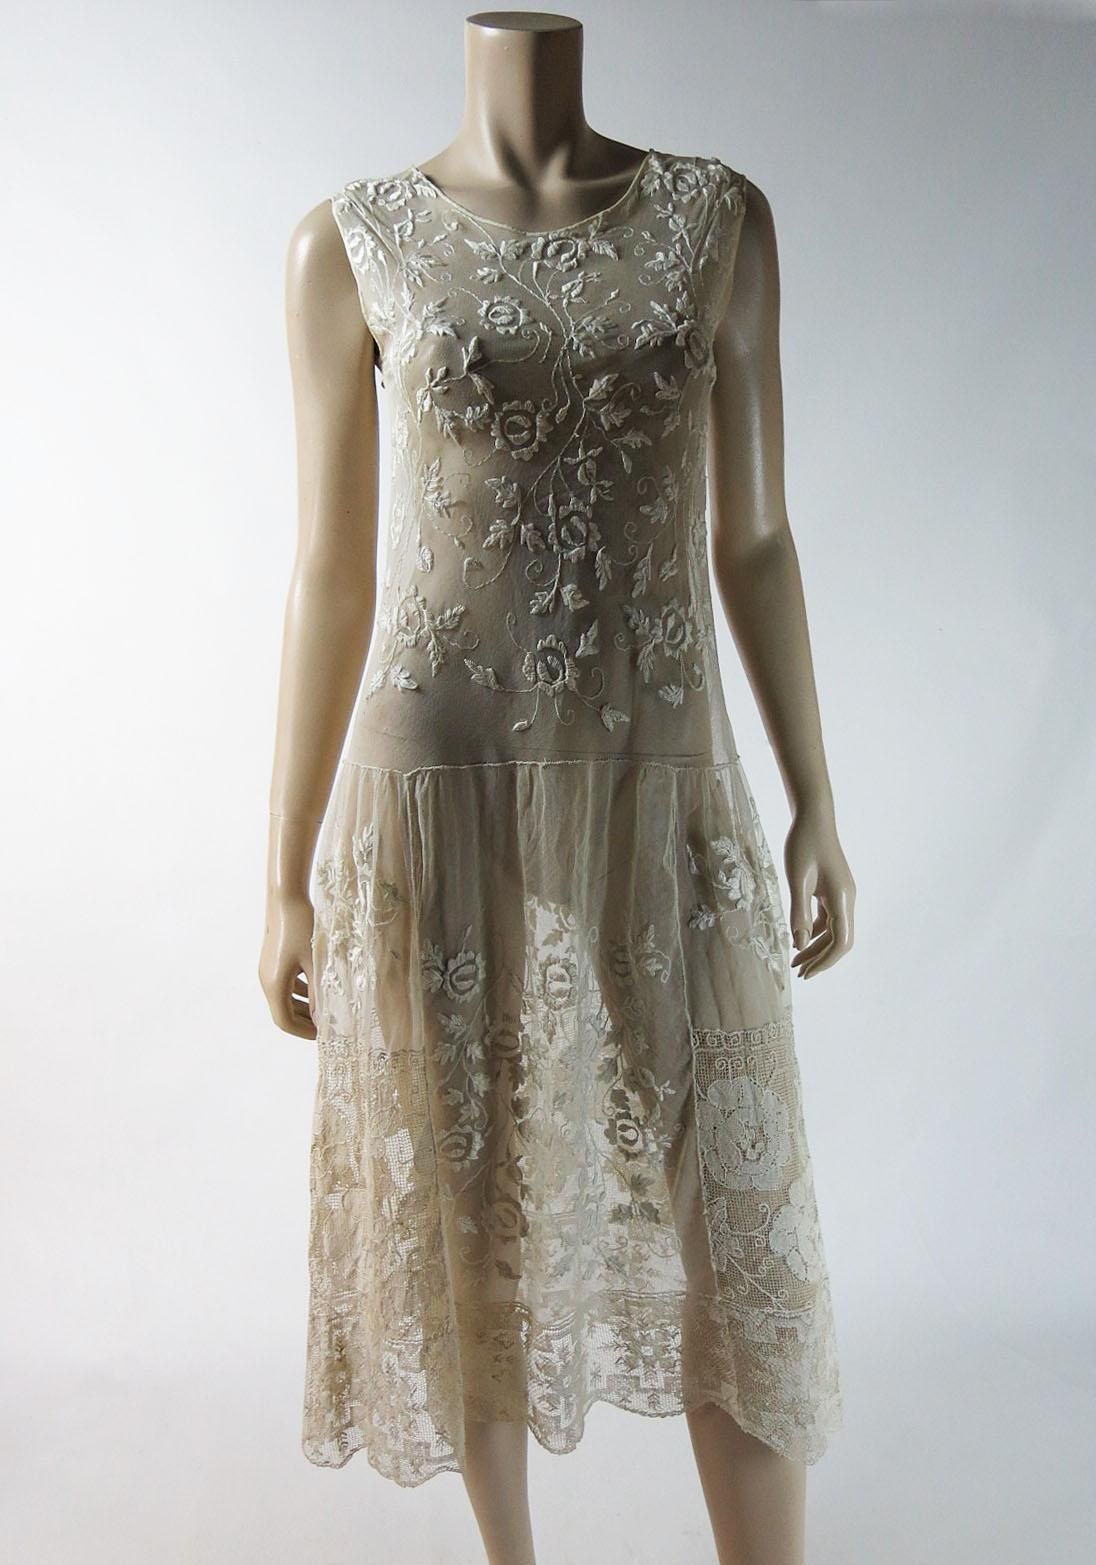 Vintage 1920's Mixed Lace DropWaist Dress With Rose